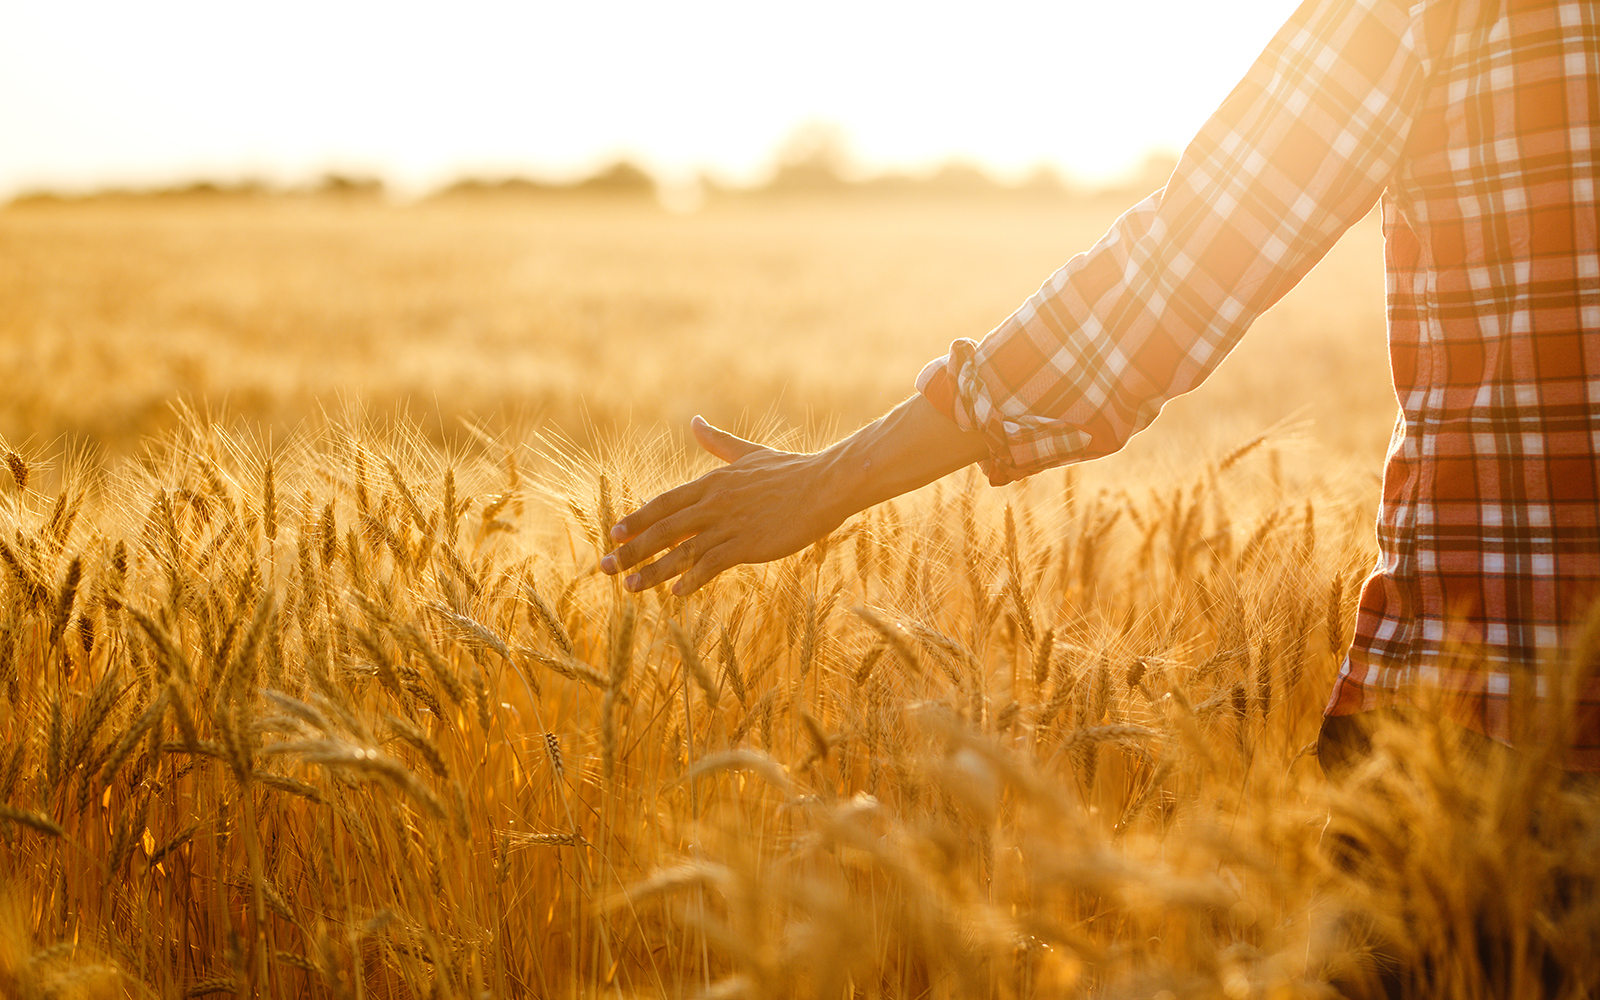 Close up of a persons hand walking through a wheat field